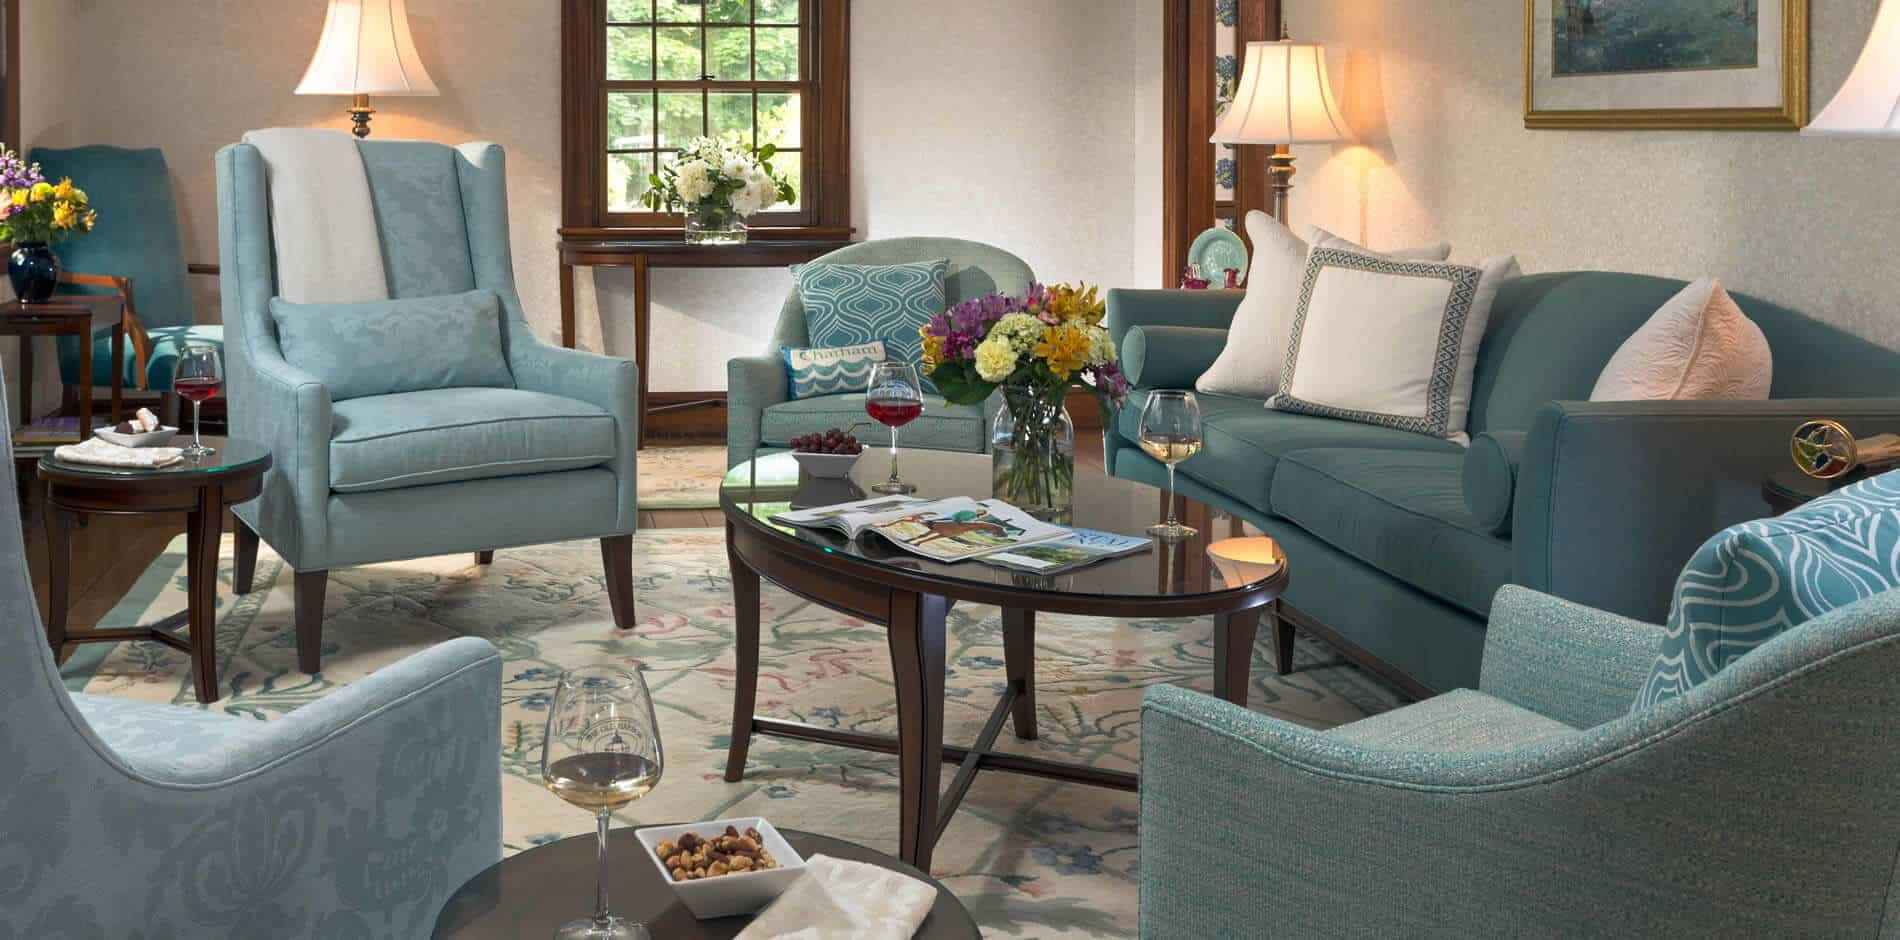 Beige living room with wood trim, light blue upholstered furniture, several tables with wine glasses